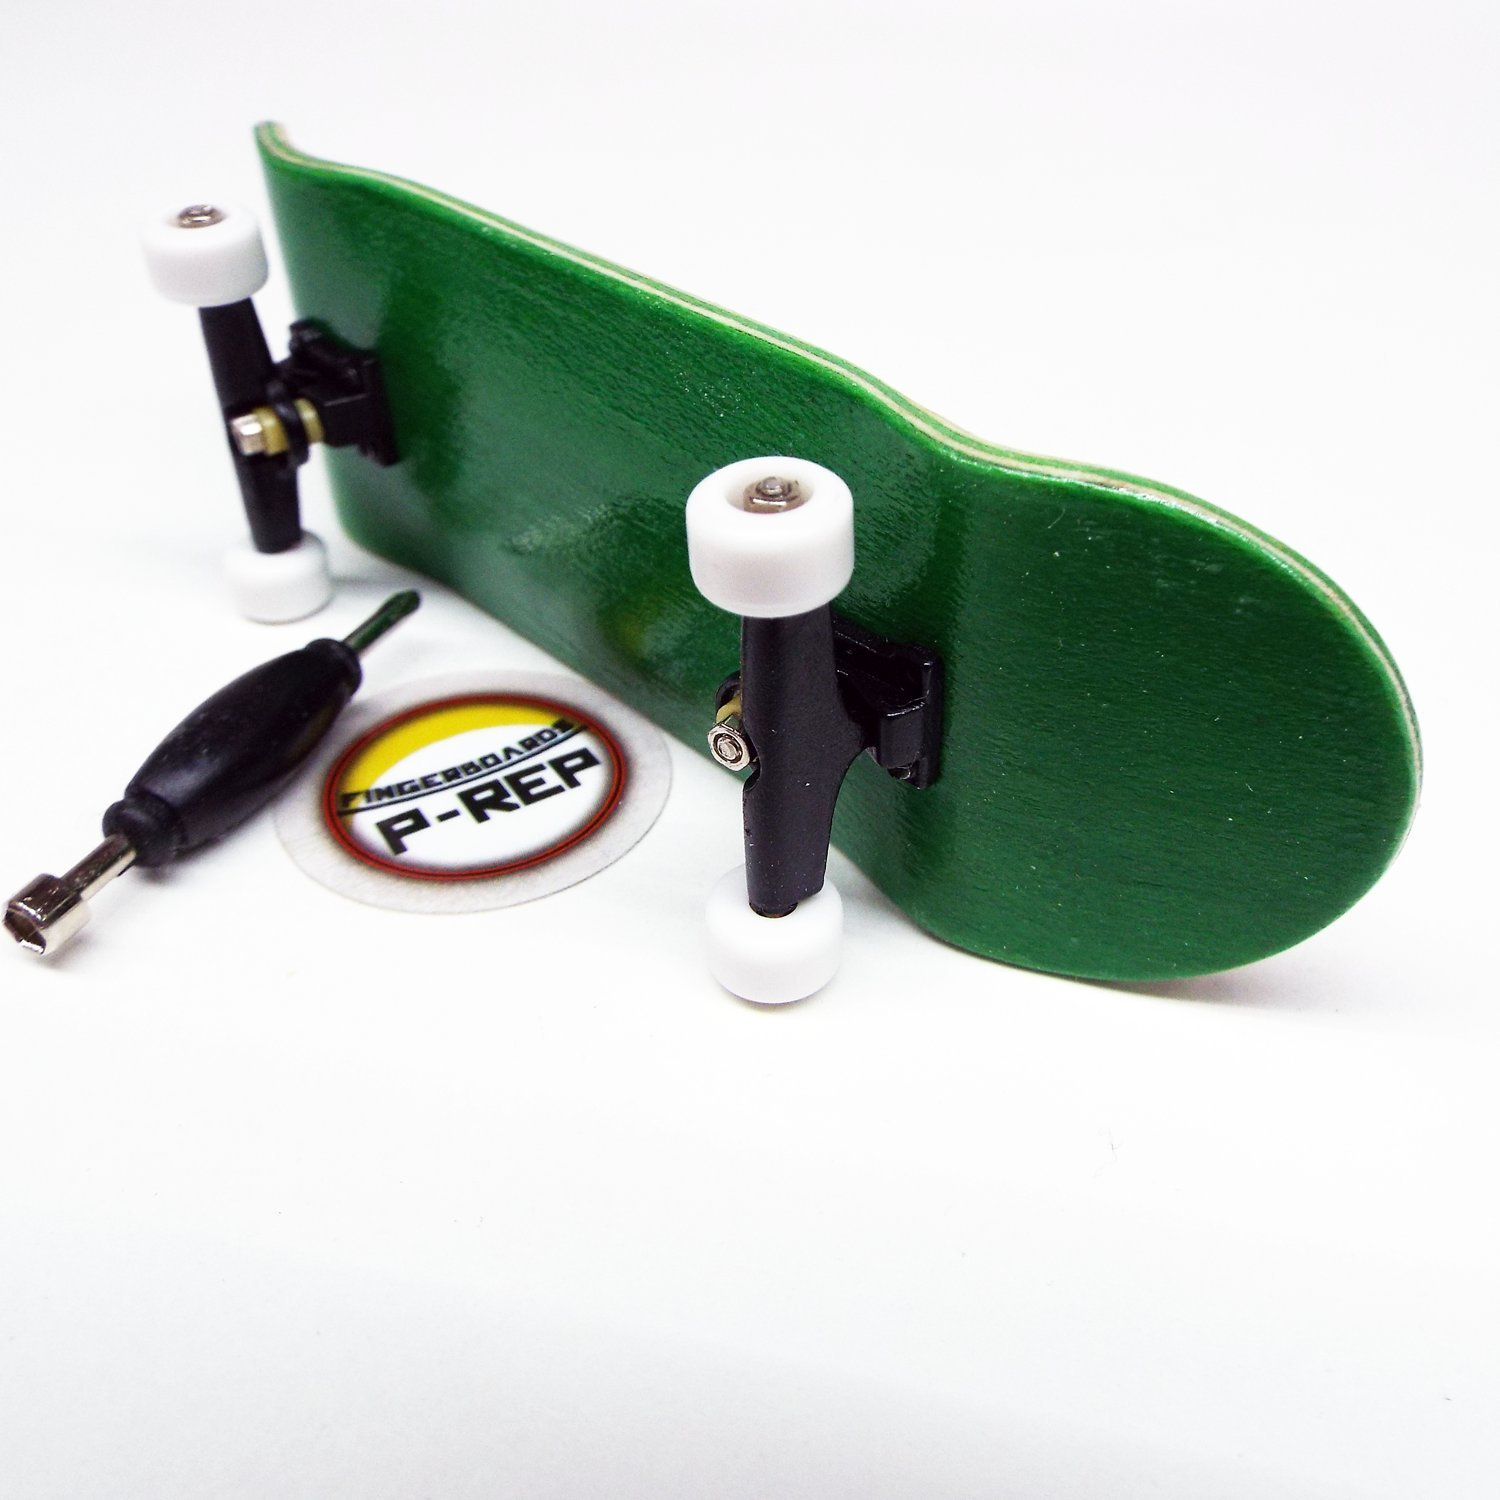 Peoples Republic Green Complete Wooden Fingerboard with Basic Bearing Wheels Starter Edition